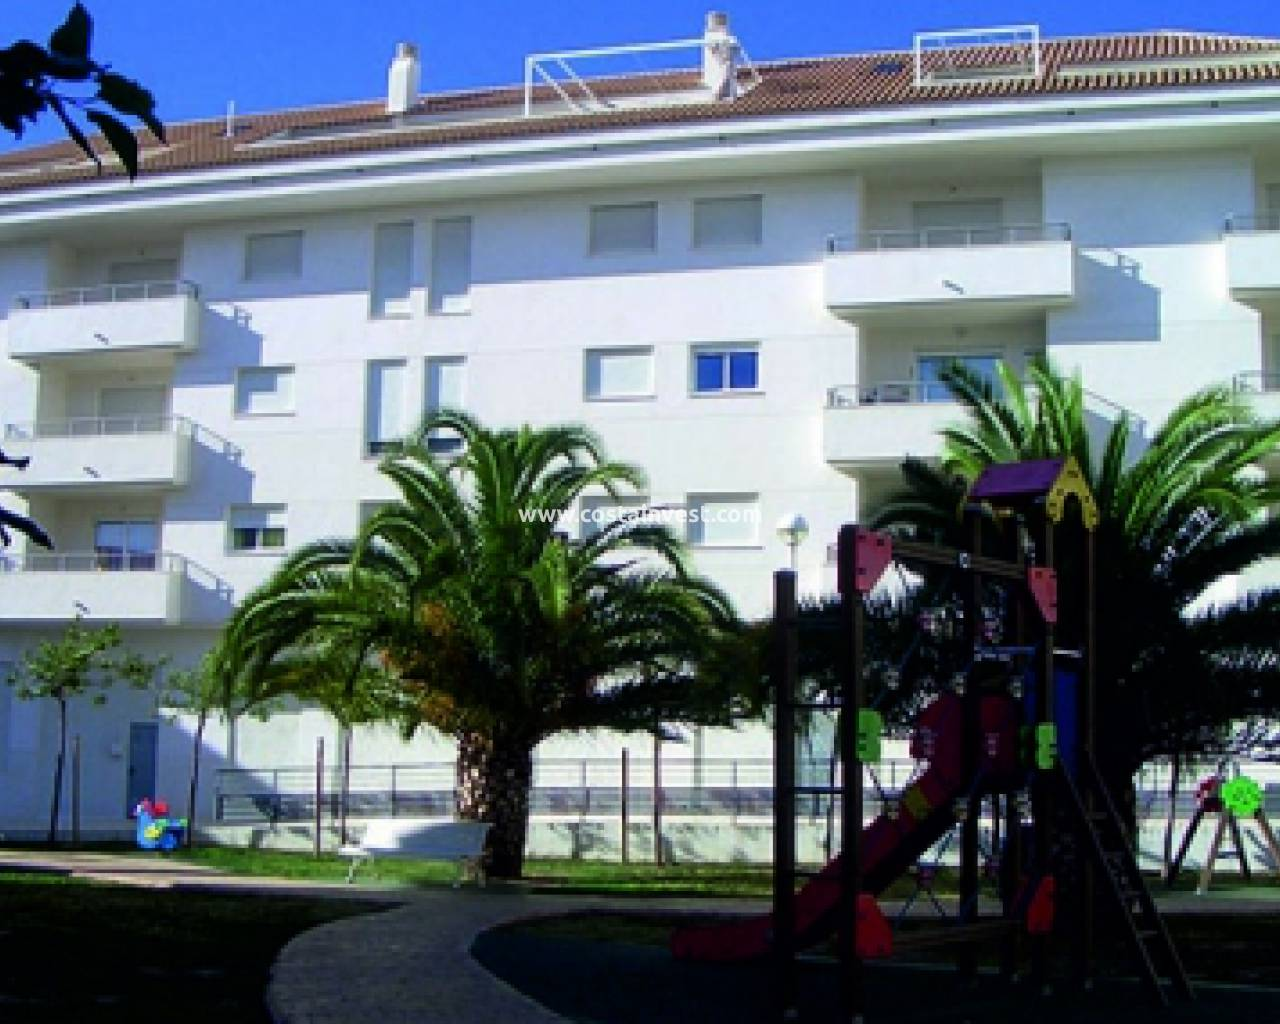 Construcția nouă - Apartment - Altea